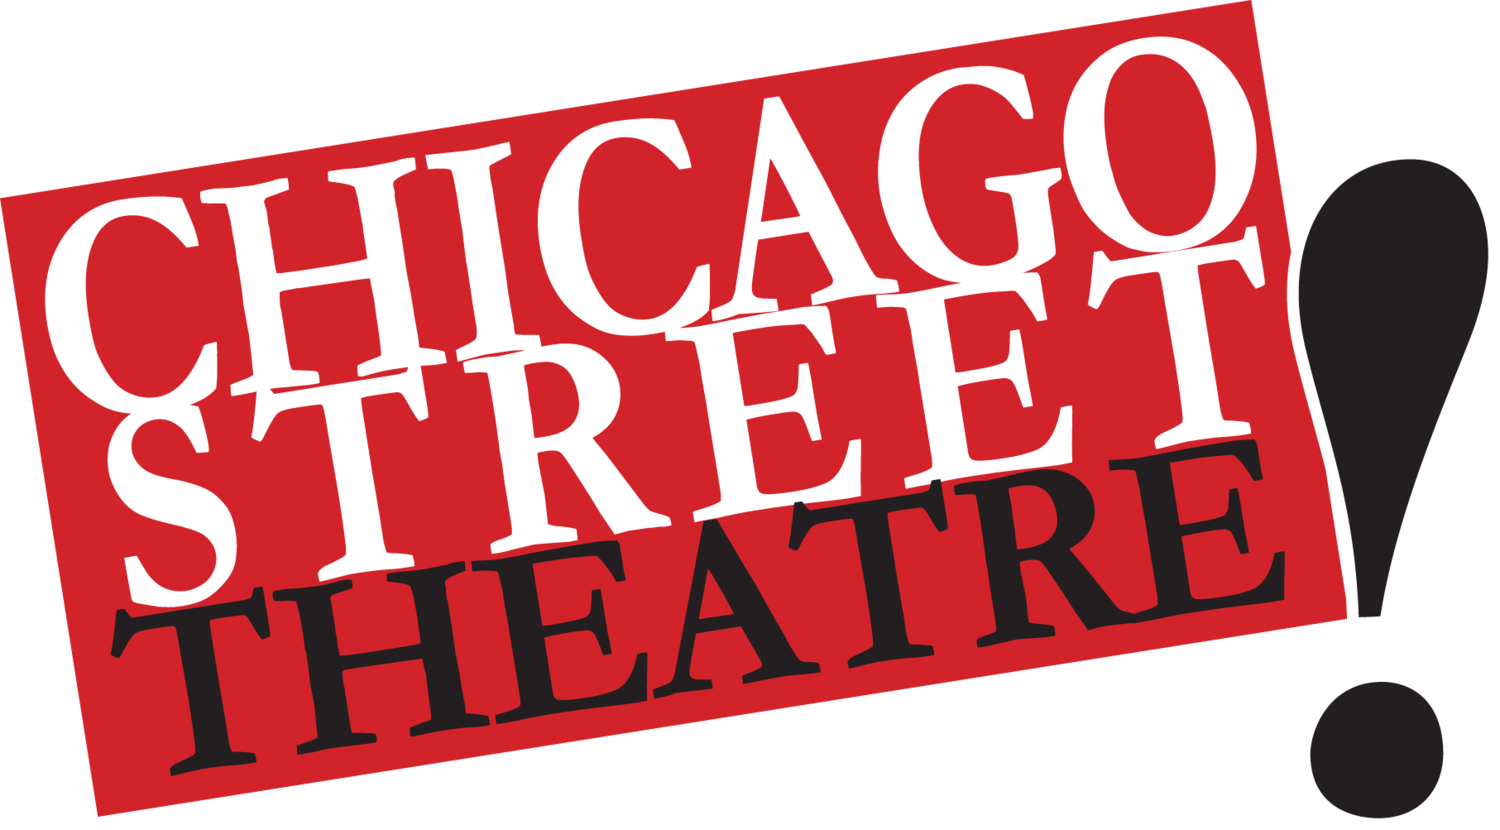 Chicago Street Theatre